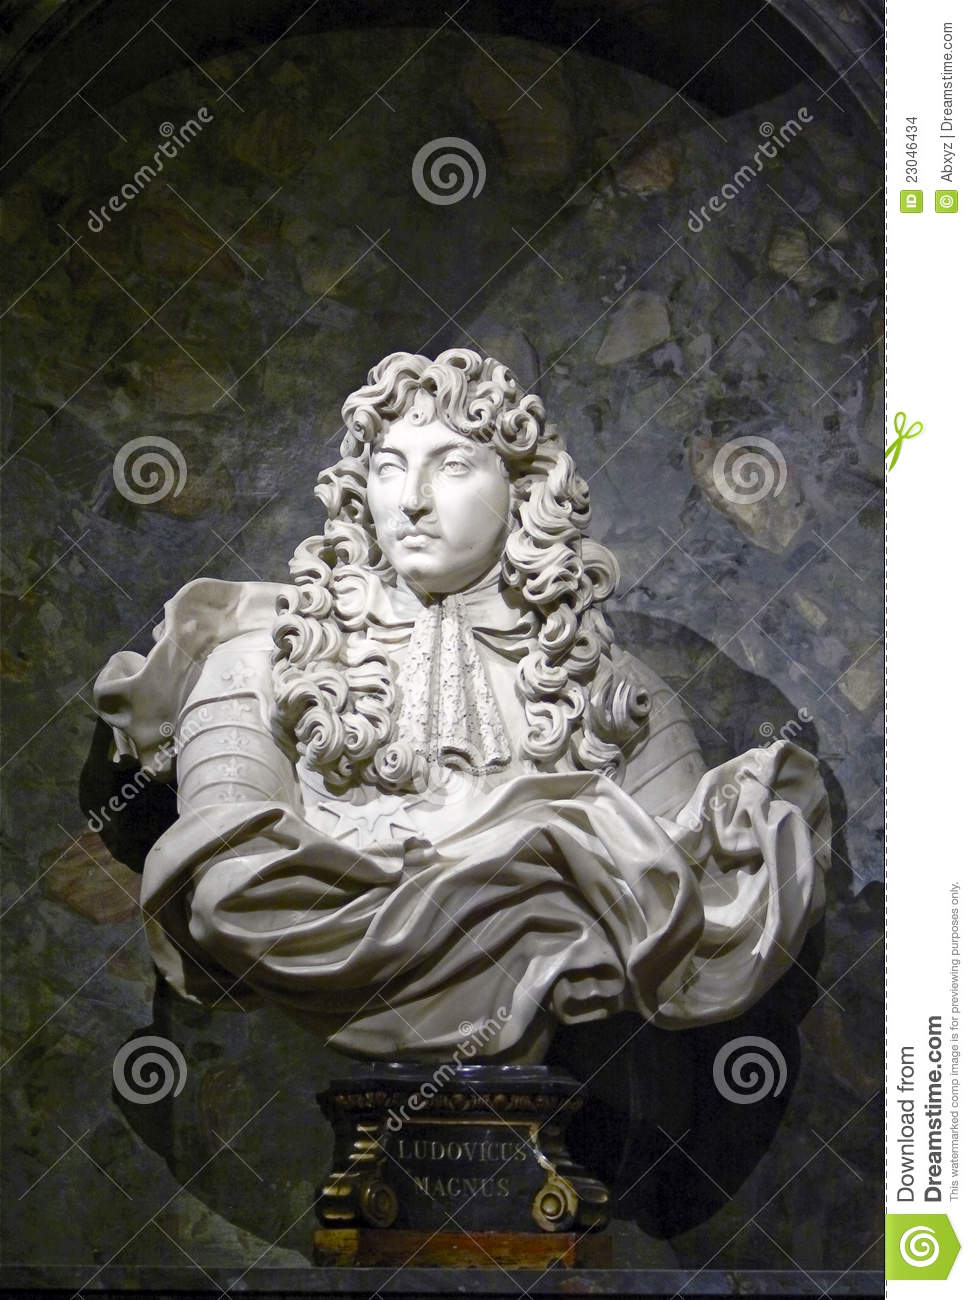 the ruling of the french king louis xiv The longest ruling monarch in european history, louis xiv came to the throne aged 4 and went on to rule for 72 years 1660-06-09 french king louis xiv (21.